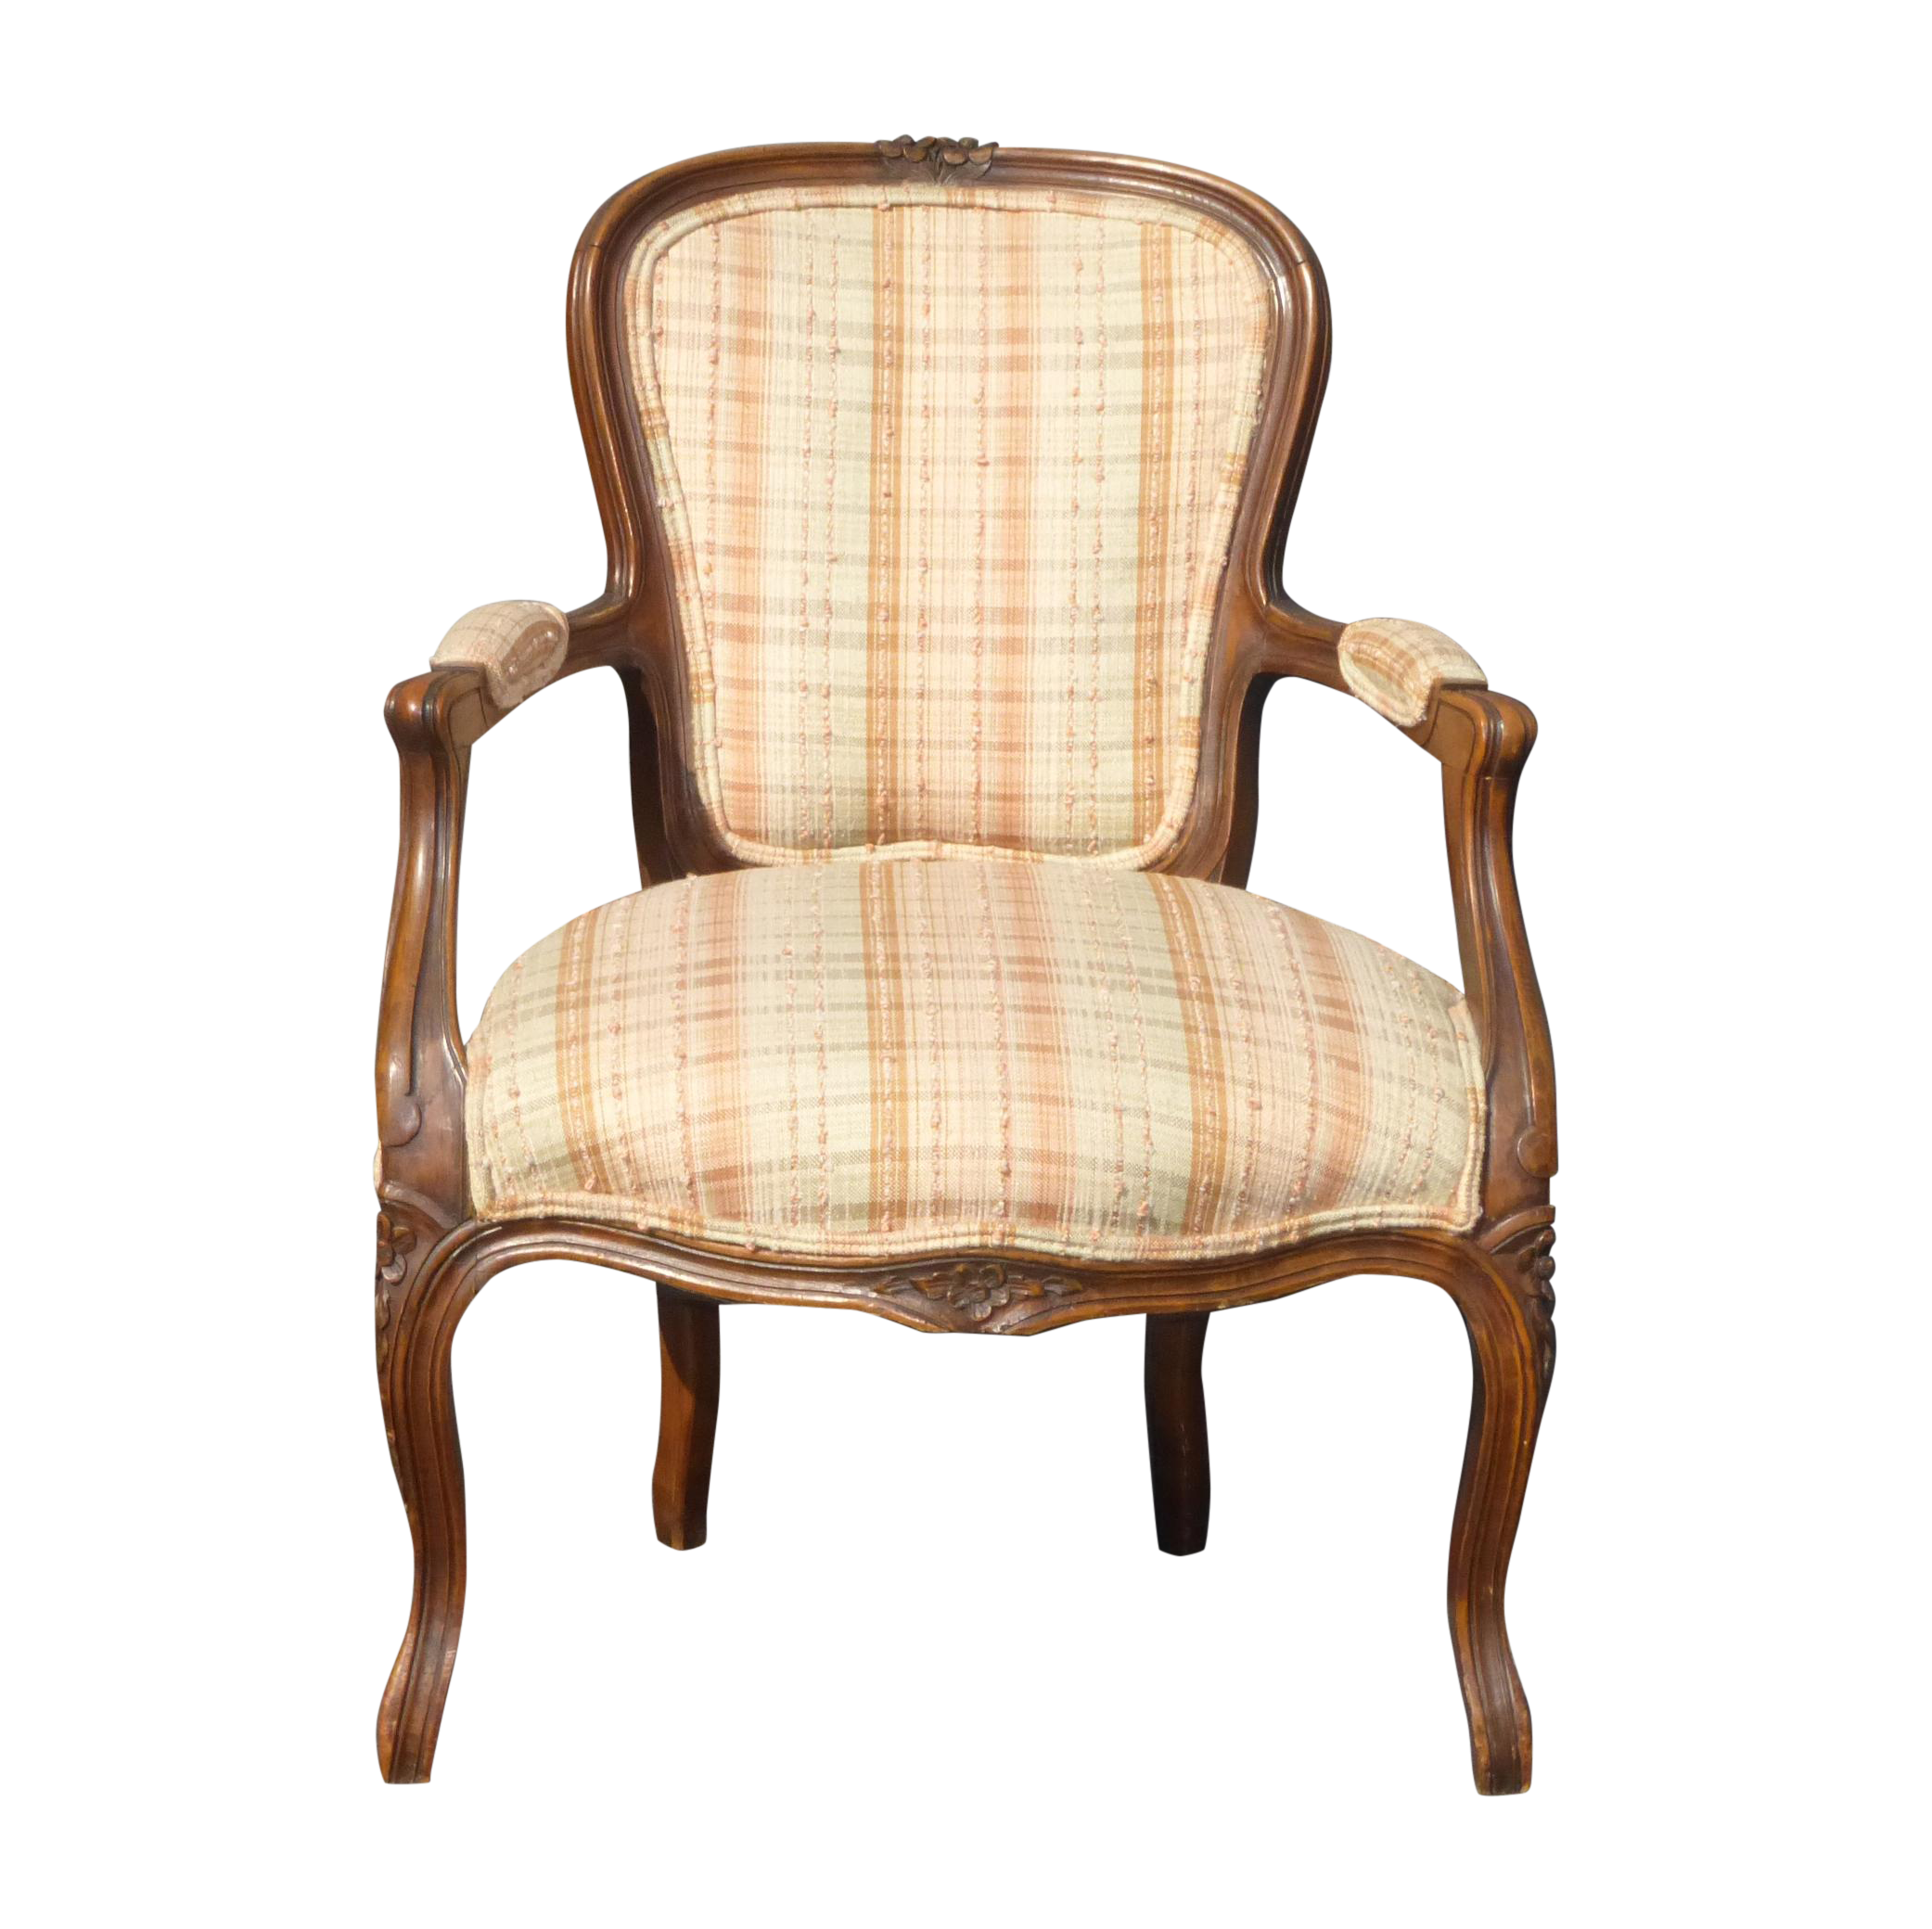 french provincial carved plaid accent arm chair chairish rh chairish com Buffalo Plaid Accent Chair Buffalo Plaid Accent Chair